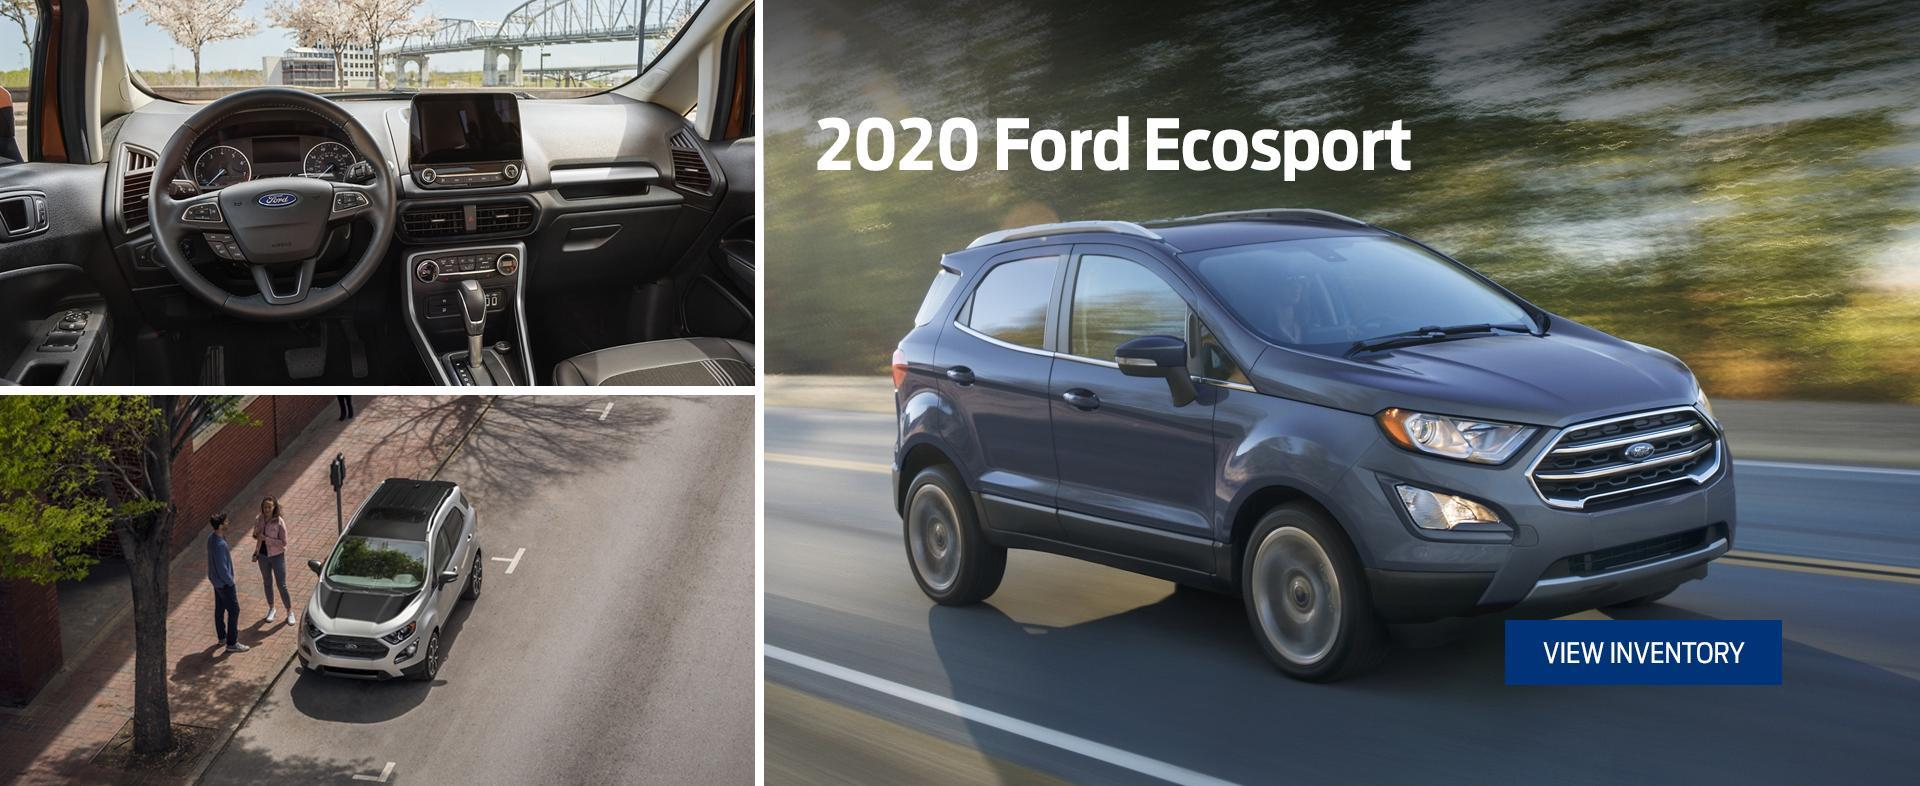 Steele Ford 2020 EcoSport